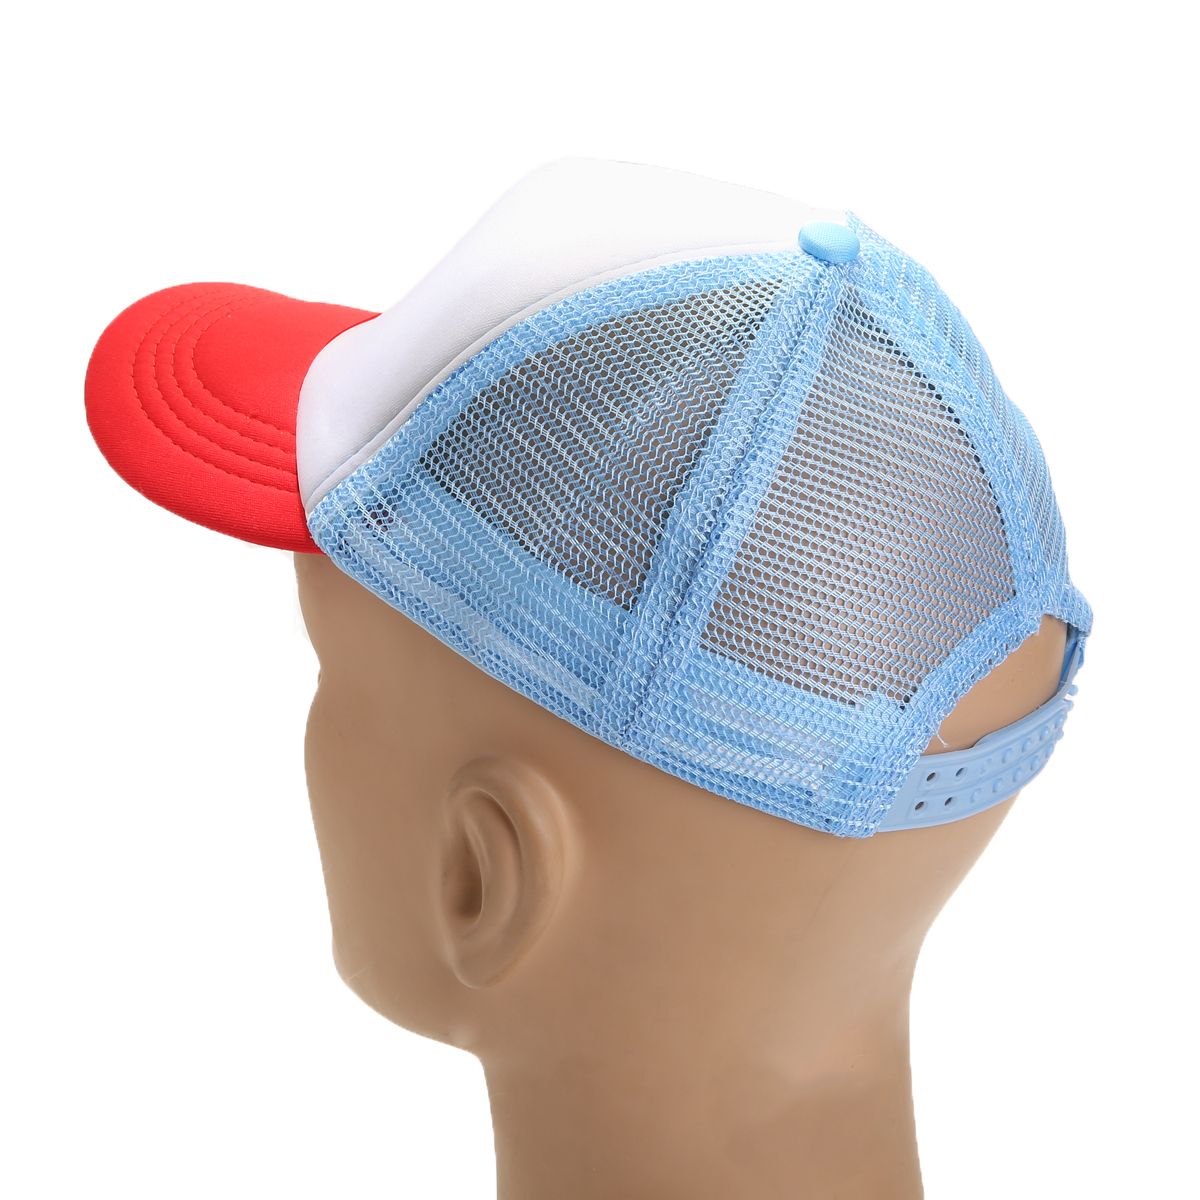 Adult Kids Children Red White Blue Adjustable Baseball Cap Outdoor Activity Sunscreen Sun Hat